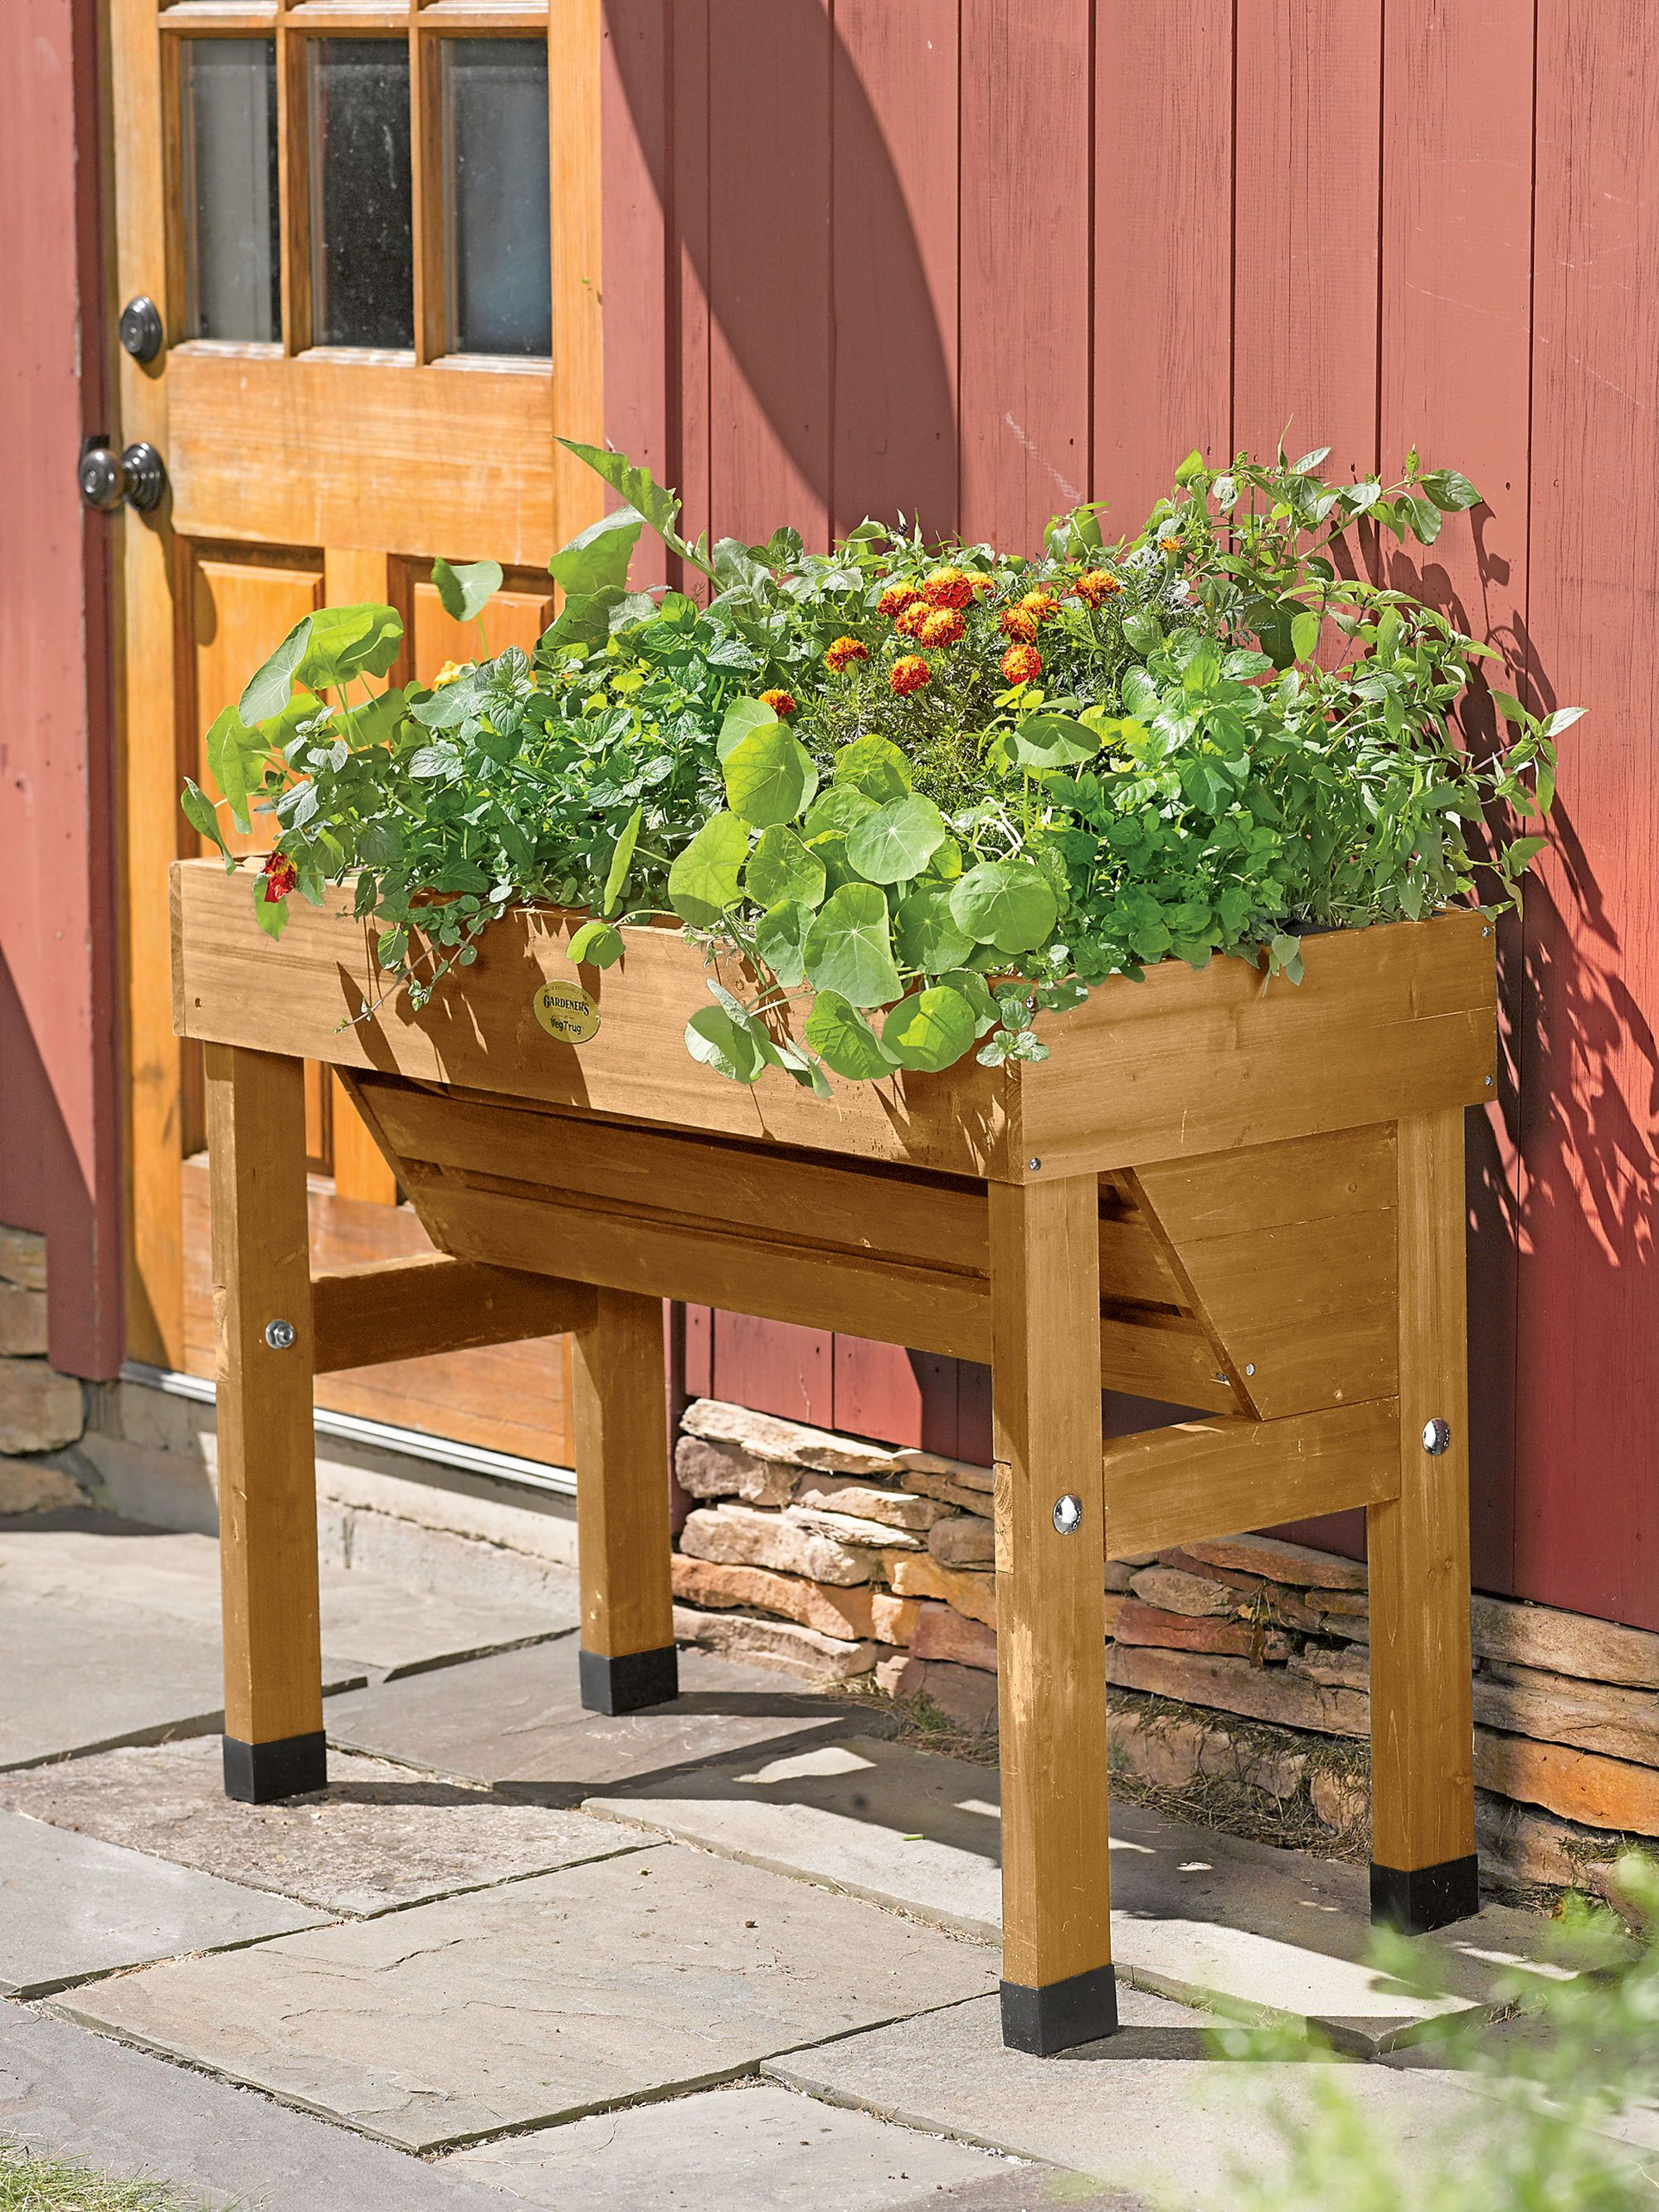 elevated vegetables choice kit raised vegetable grow best products bed wooden gardening itm planter bcp garden